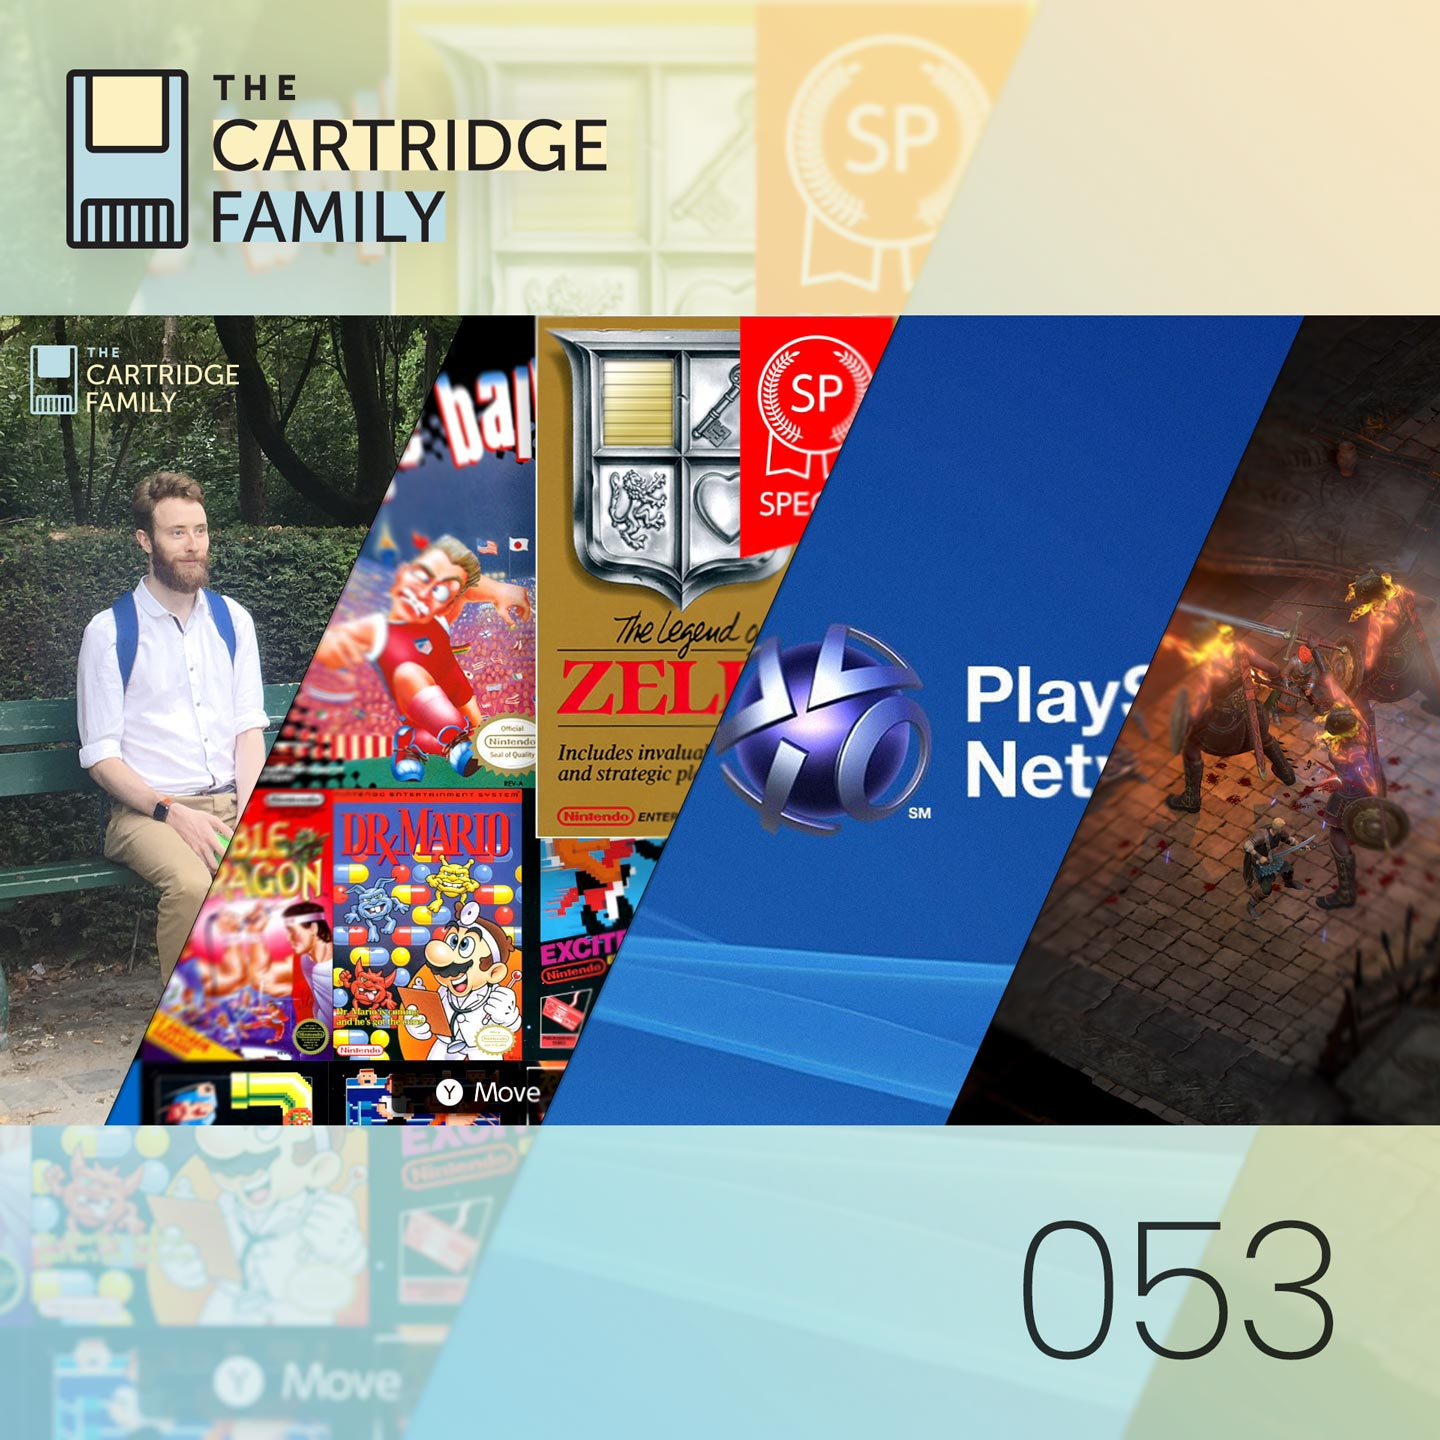 The Cartridge Family 053 Call of Duty: Black Ops 4